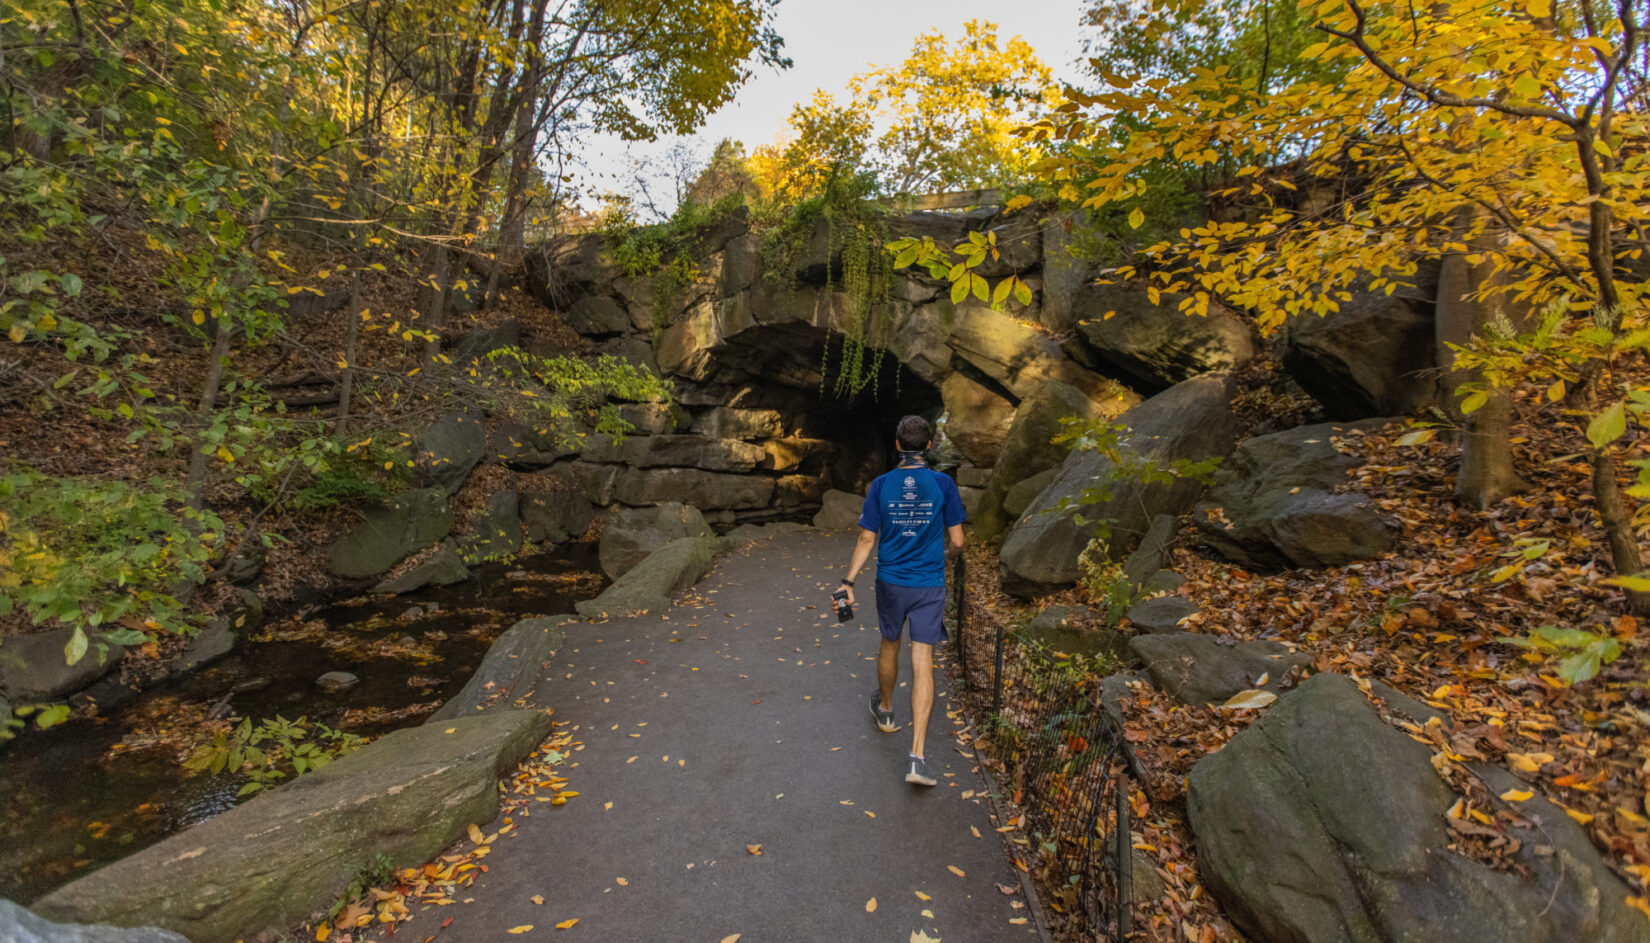 A parkgoer on a healthy walk, heading for the Huddlestone Arch in autumn